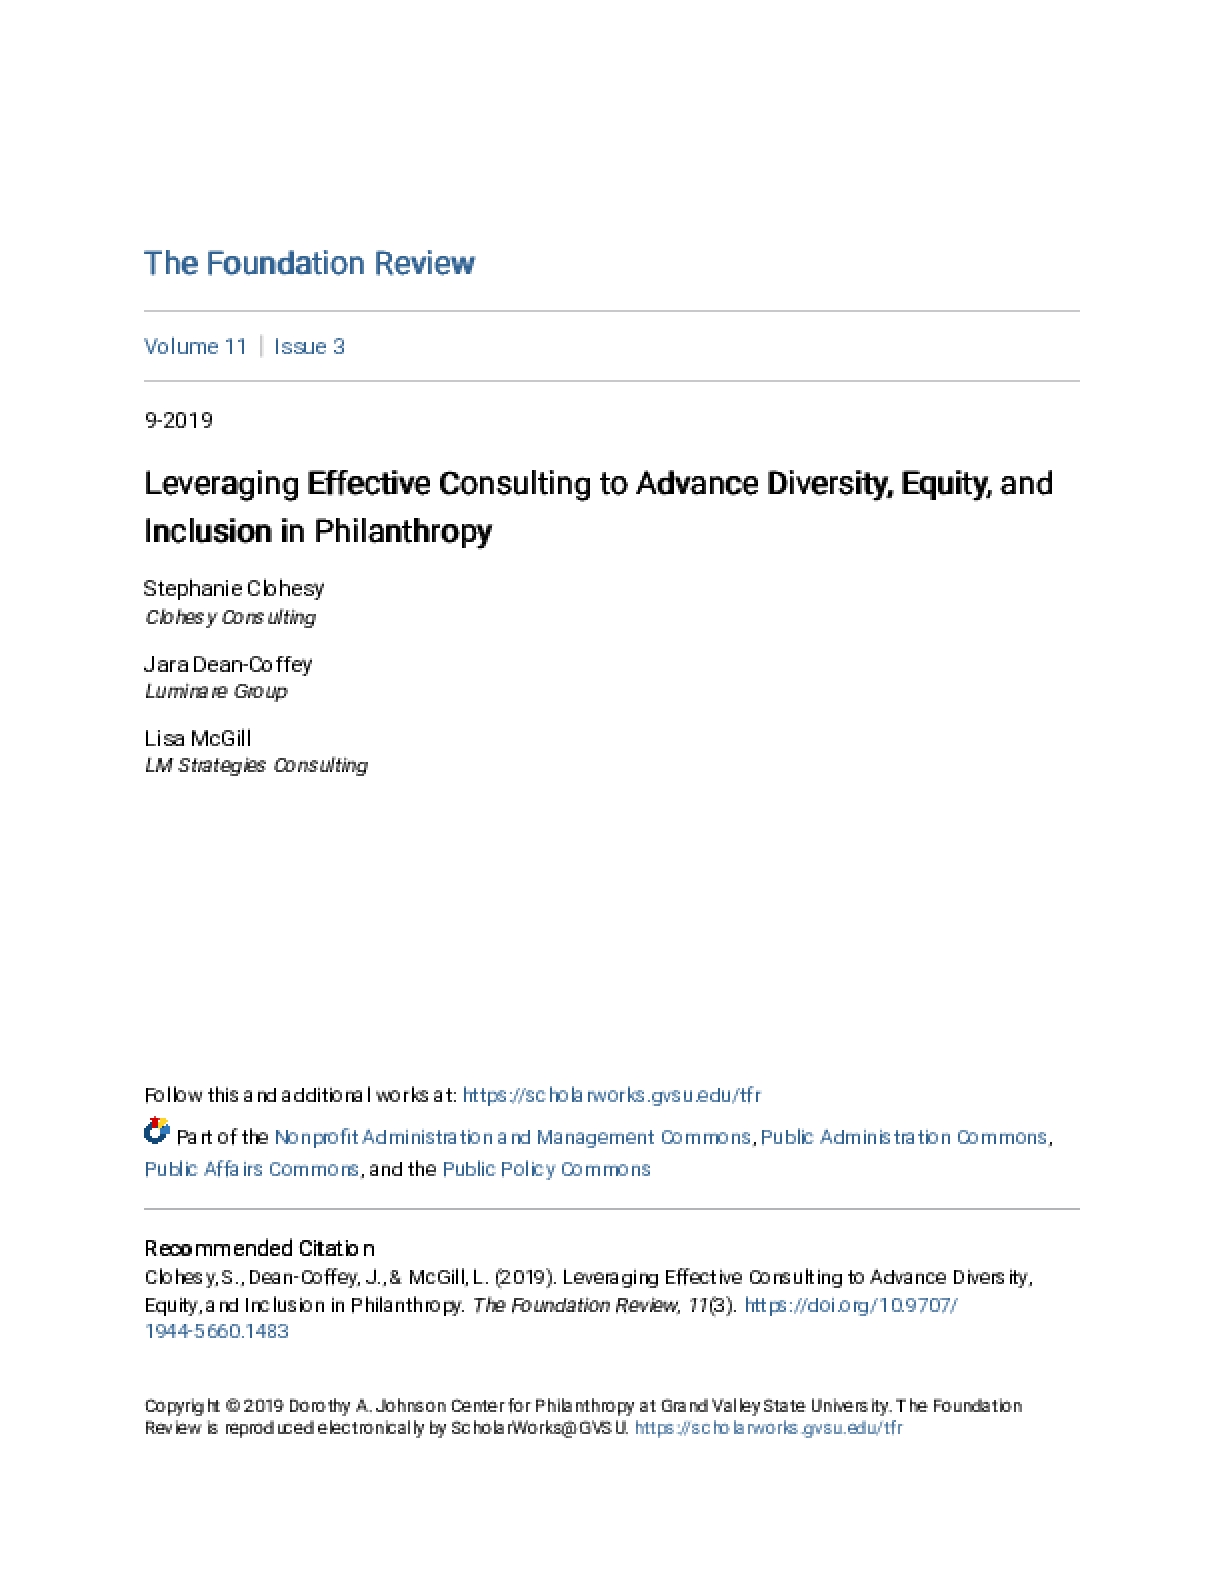 Leveraging Effective Consulting to Advance Diversity, Equity, and Inclusion in Philanthropy